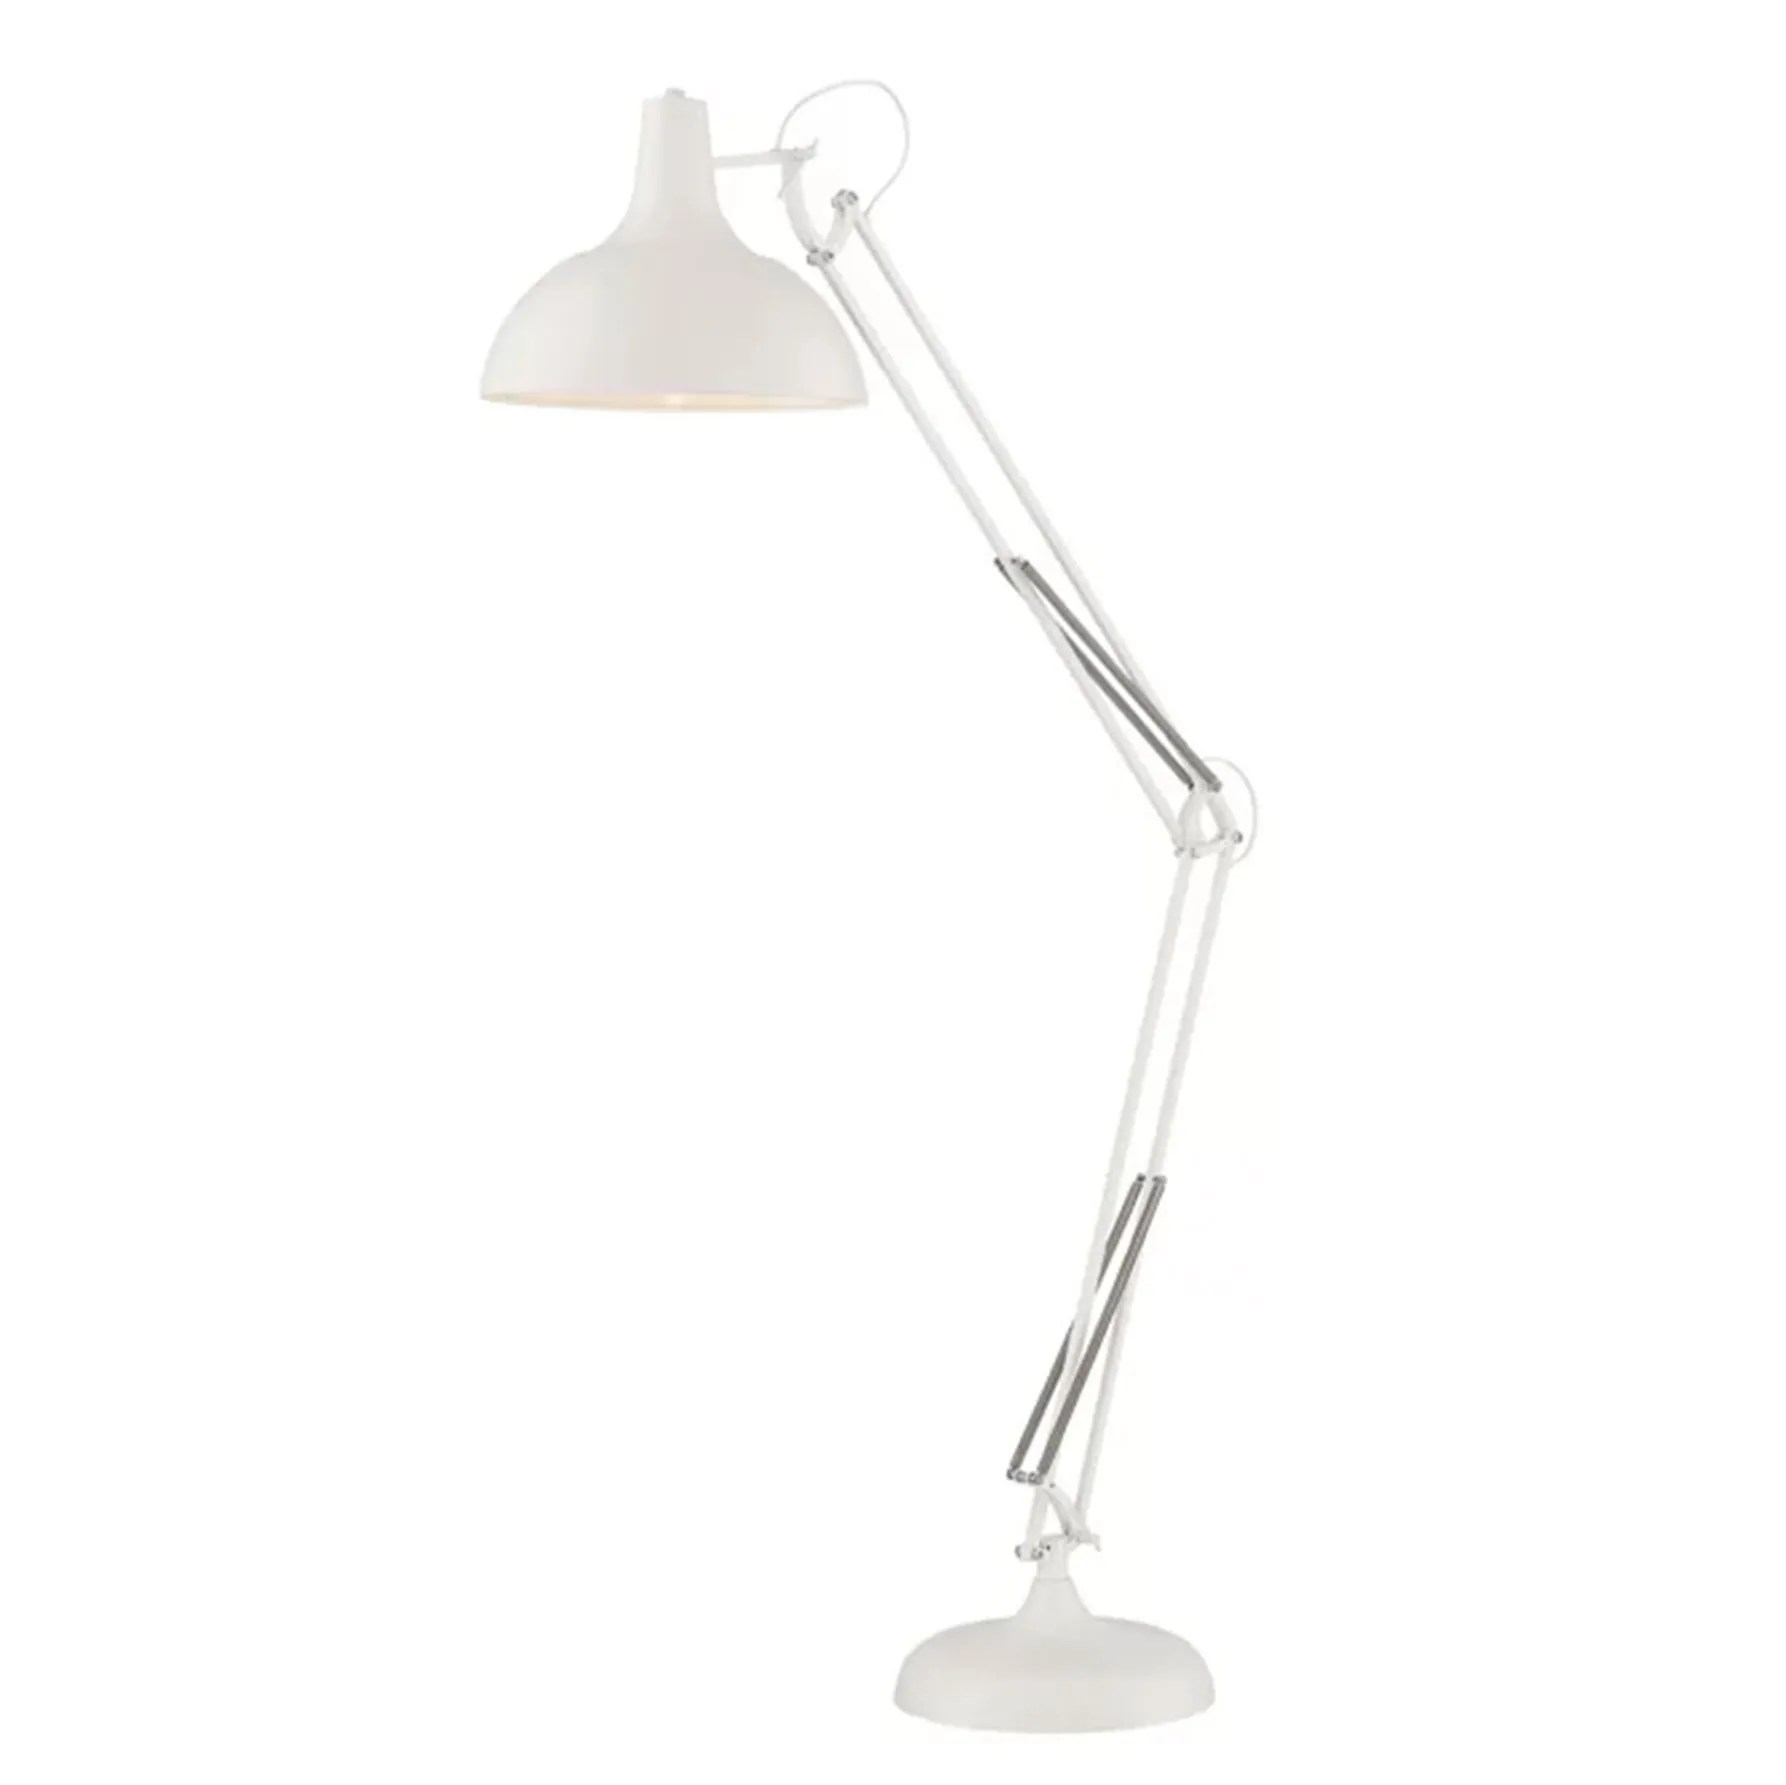 Fancy Standing Lamps You Need An Arc Floor Lamp For Your Dining Table Architectural